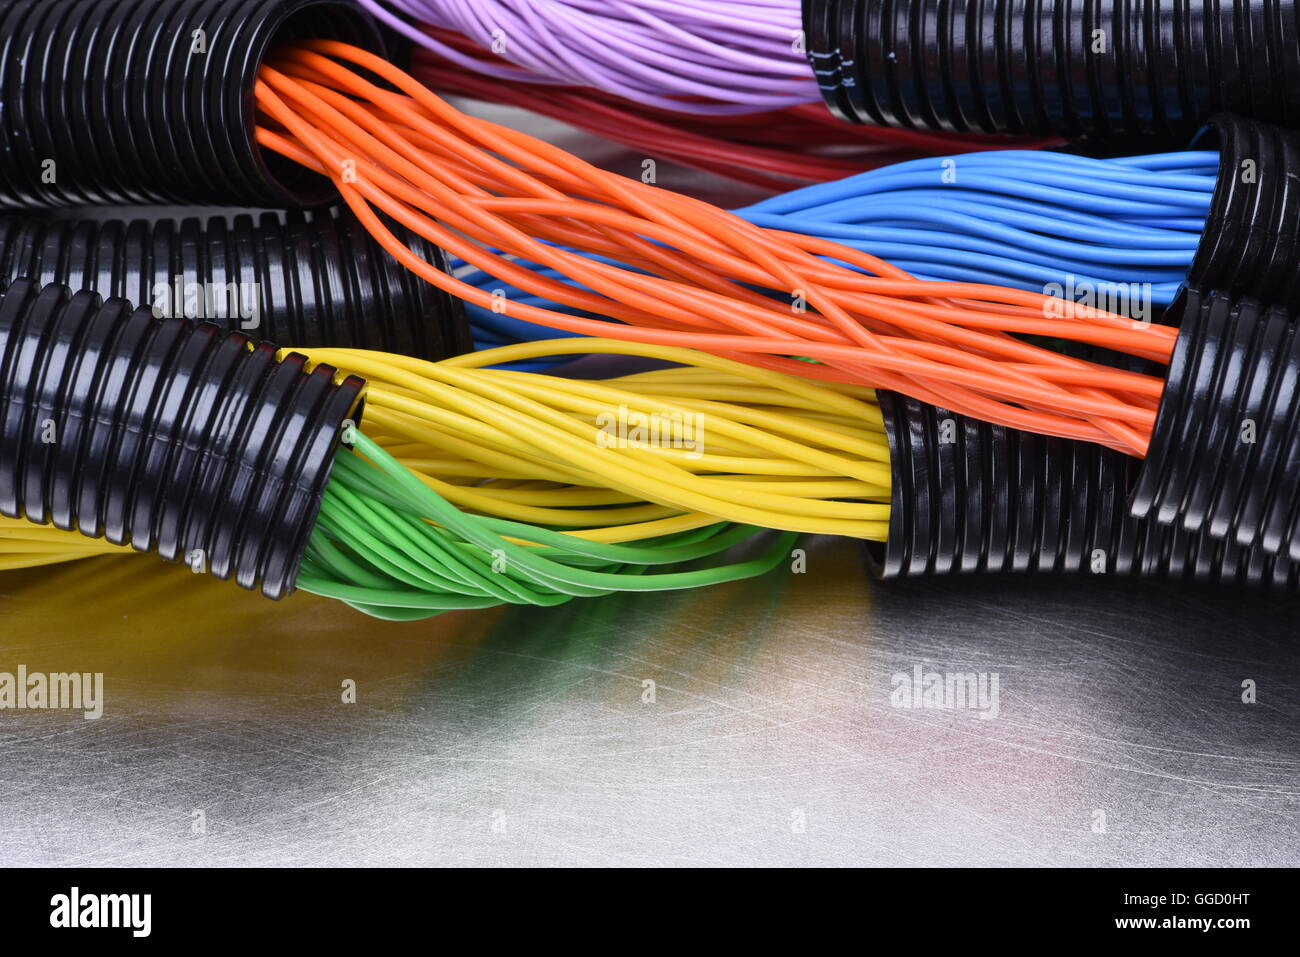 hight resolution of colorful electric cables and wires in corrugated black plastic pipes used in electrical installation on metal surface as background